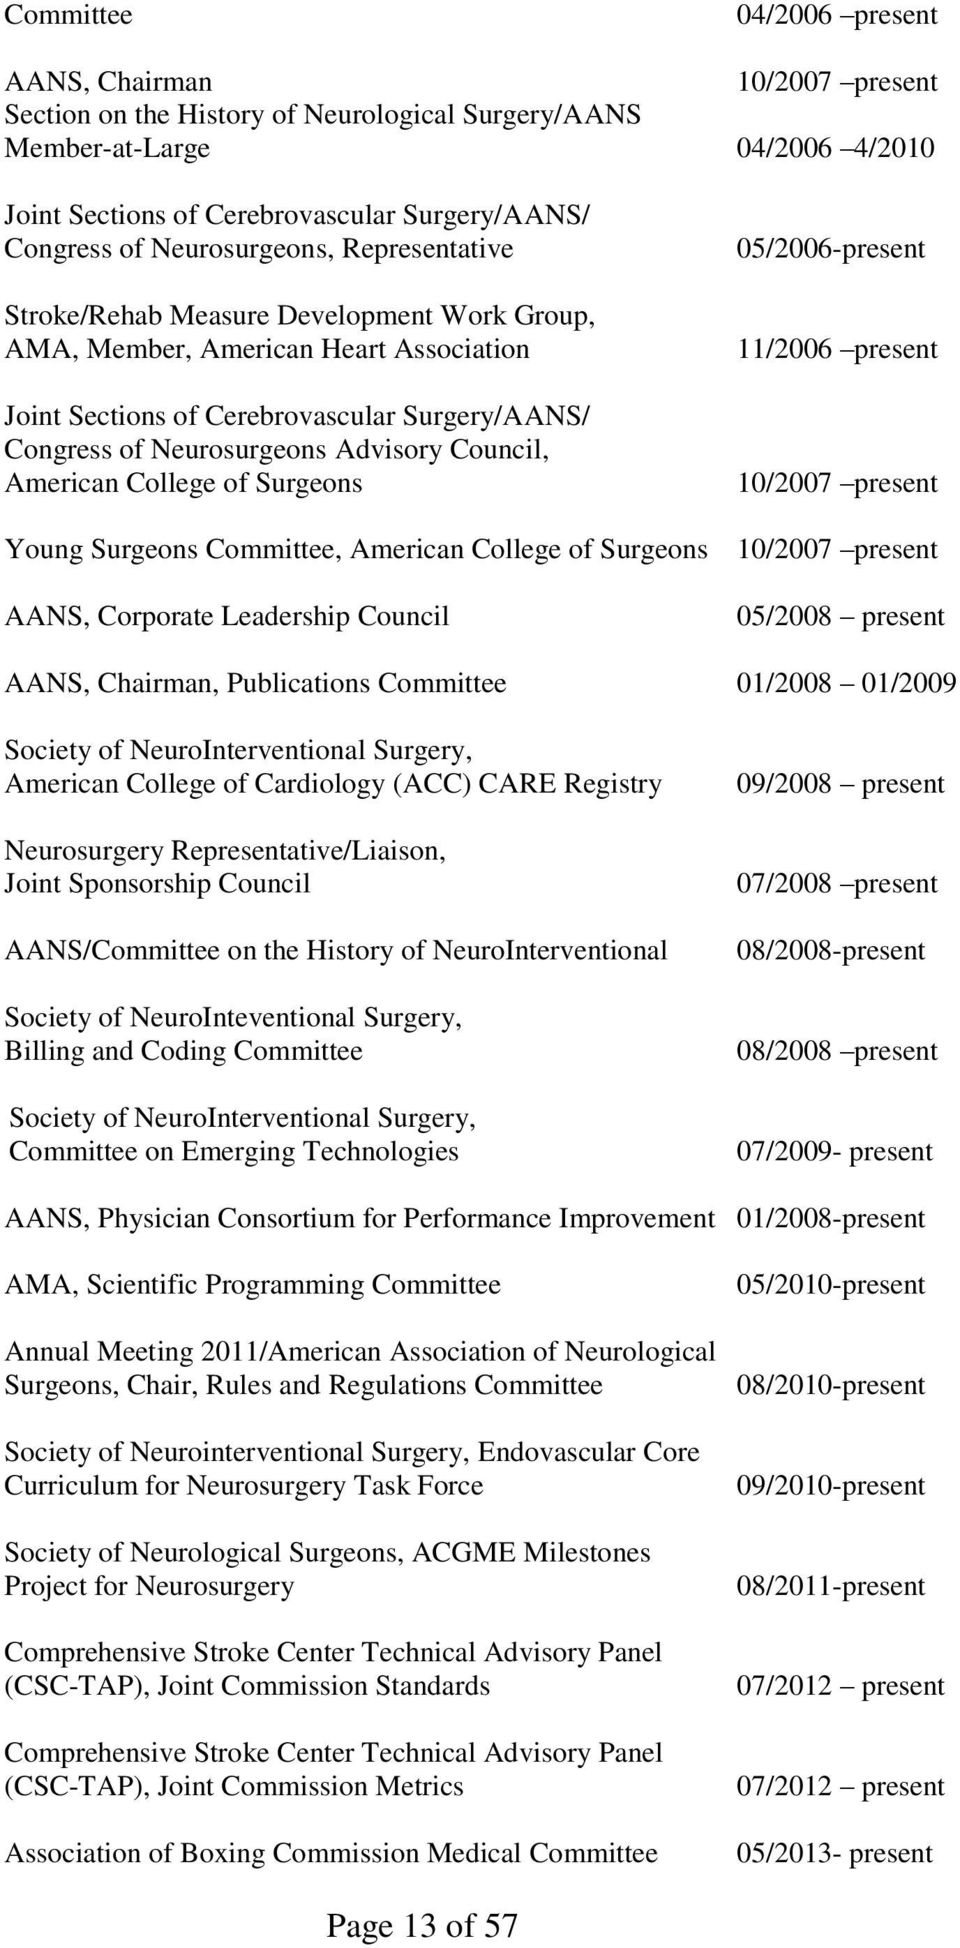 Council, American College of Surgeons 05/2006-present 11/2006 present 10/2007 present Young Surgeons Committee, American College of Surgeons 10/2007 present AANS, Corporate Leadership Council 05/2008